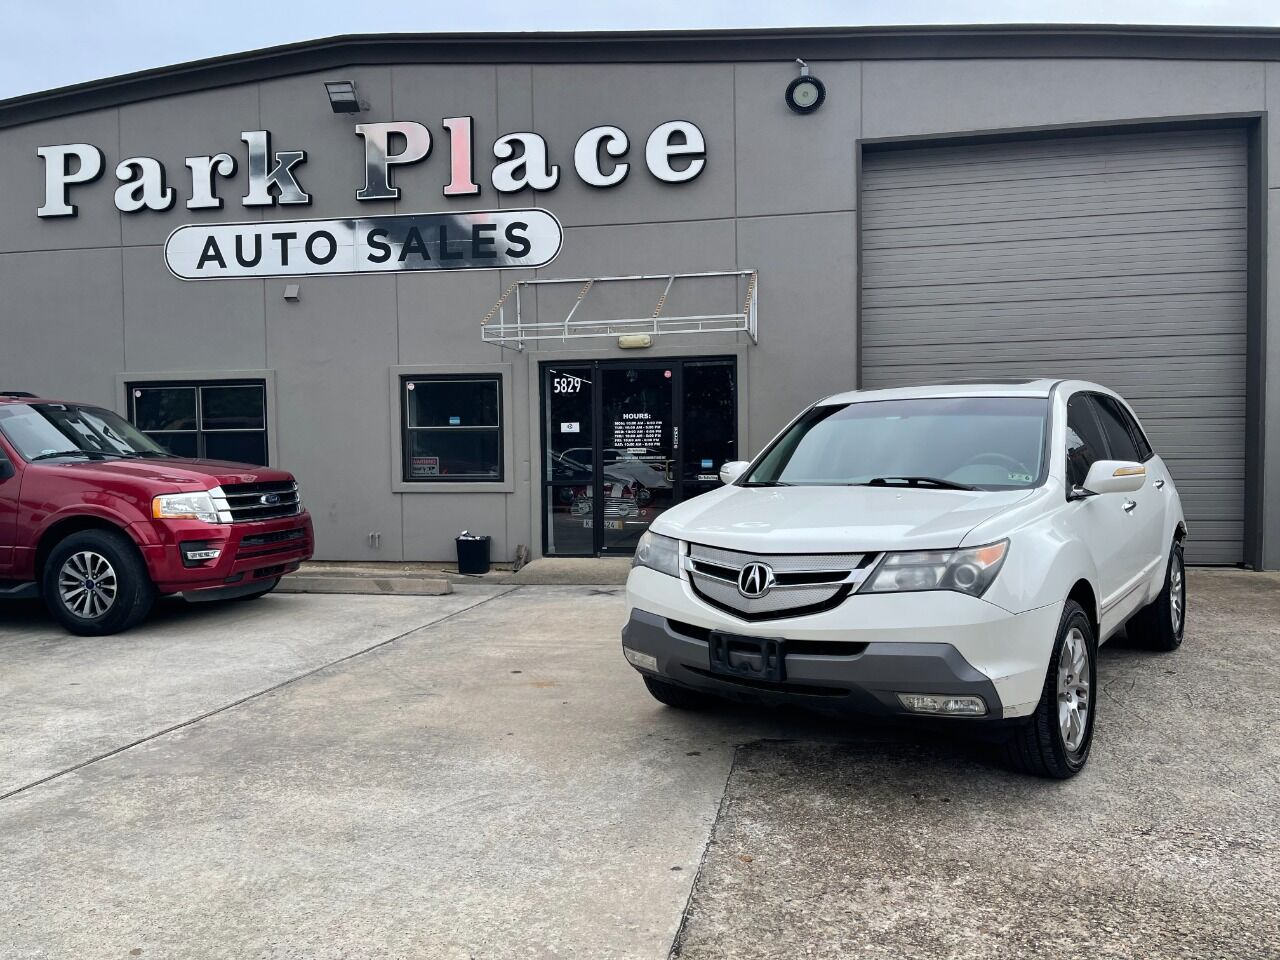 Used 2009 Acura Mdx For Sale Carsforsale Com